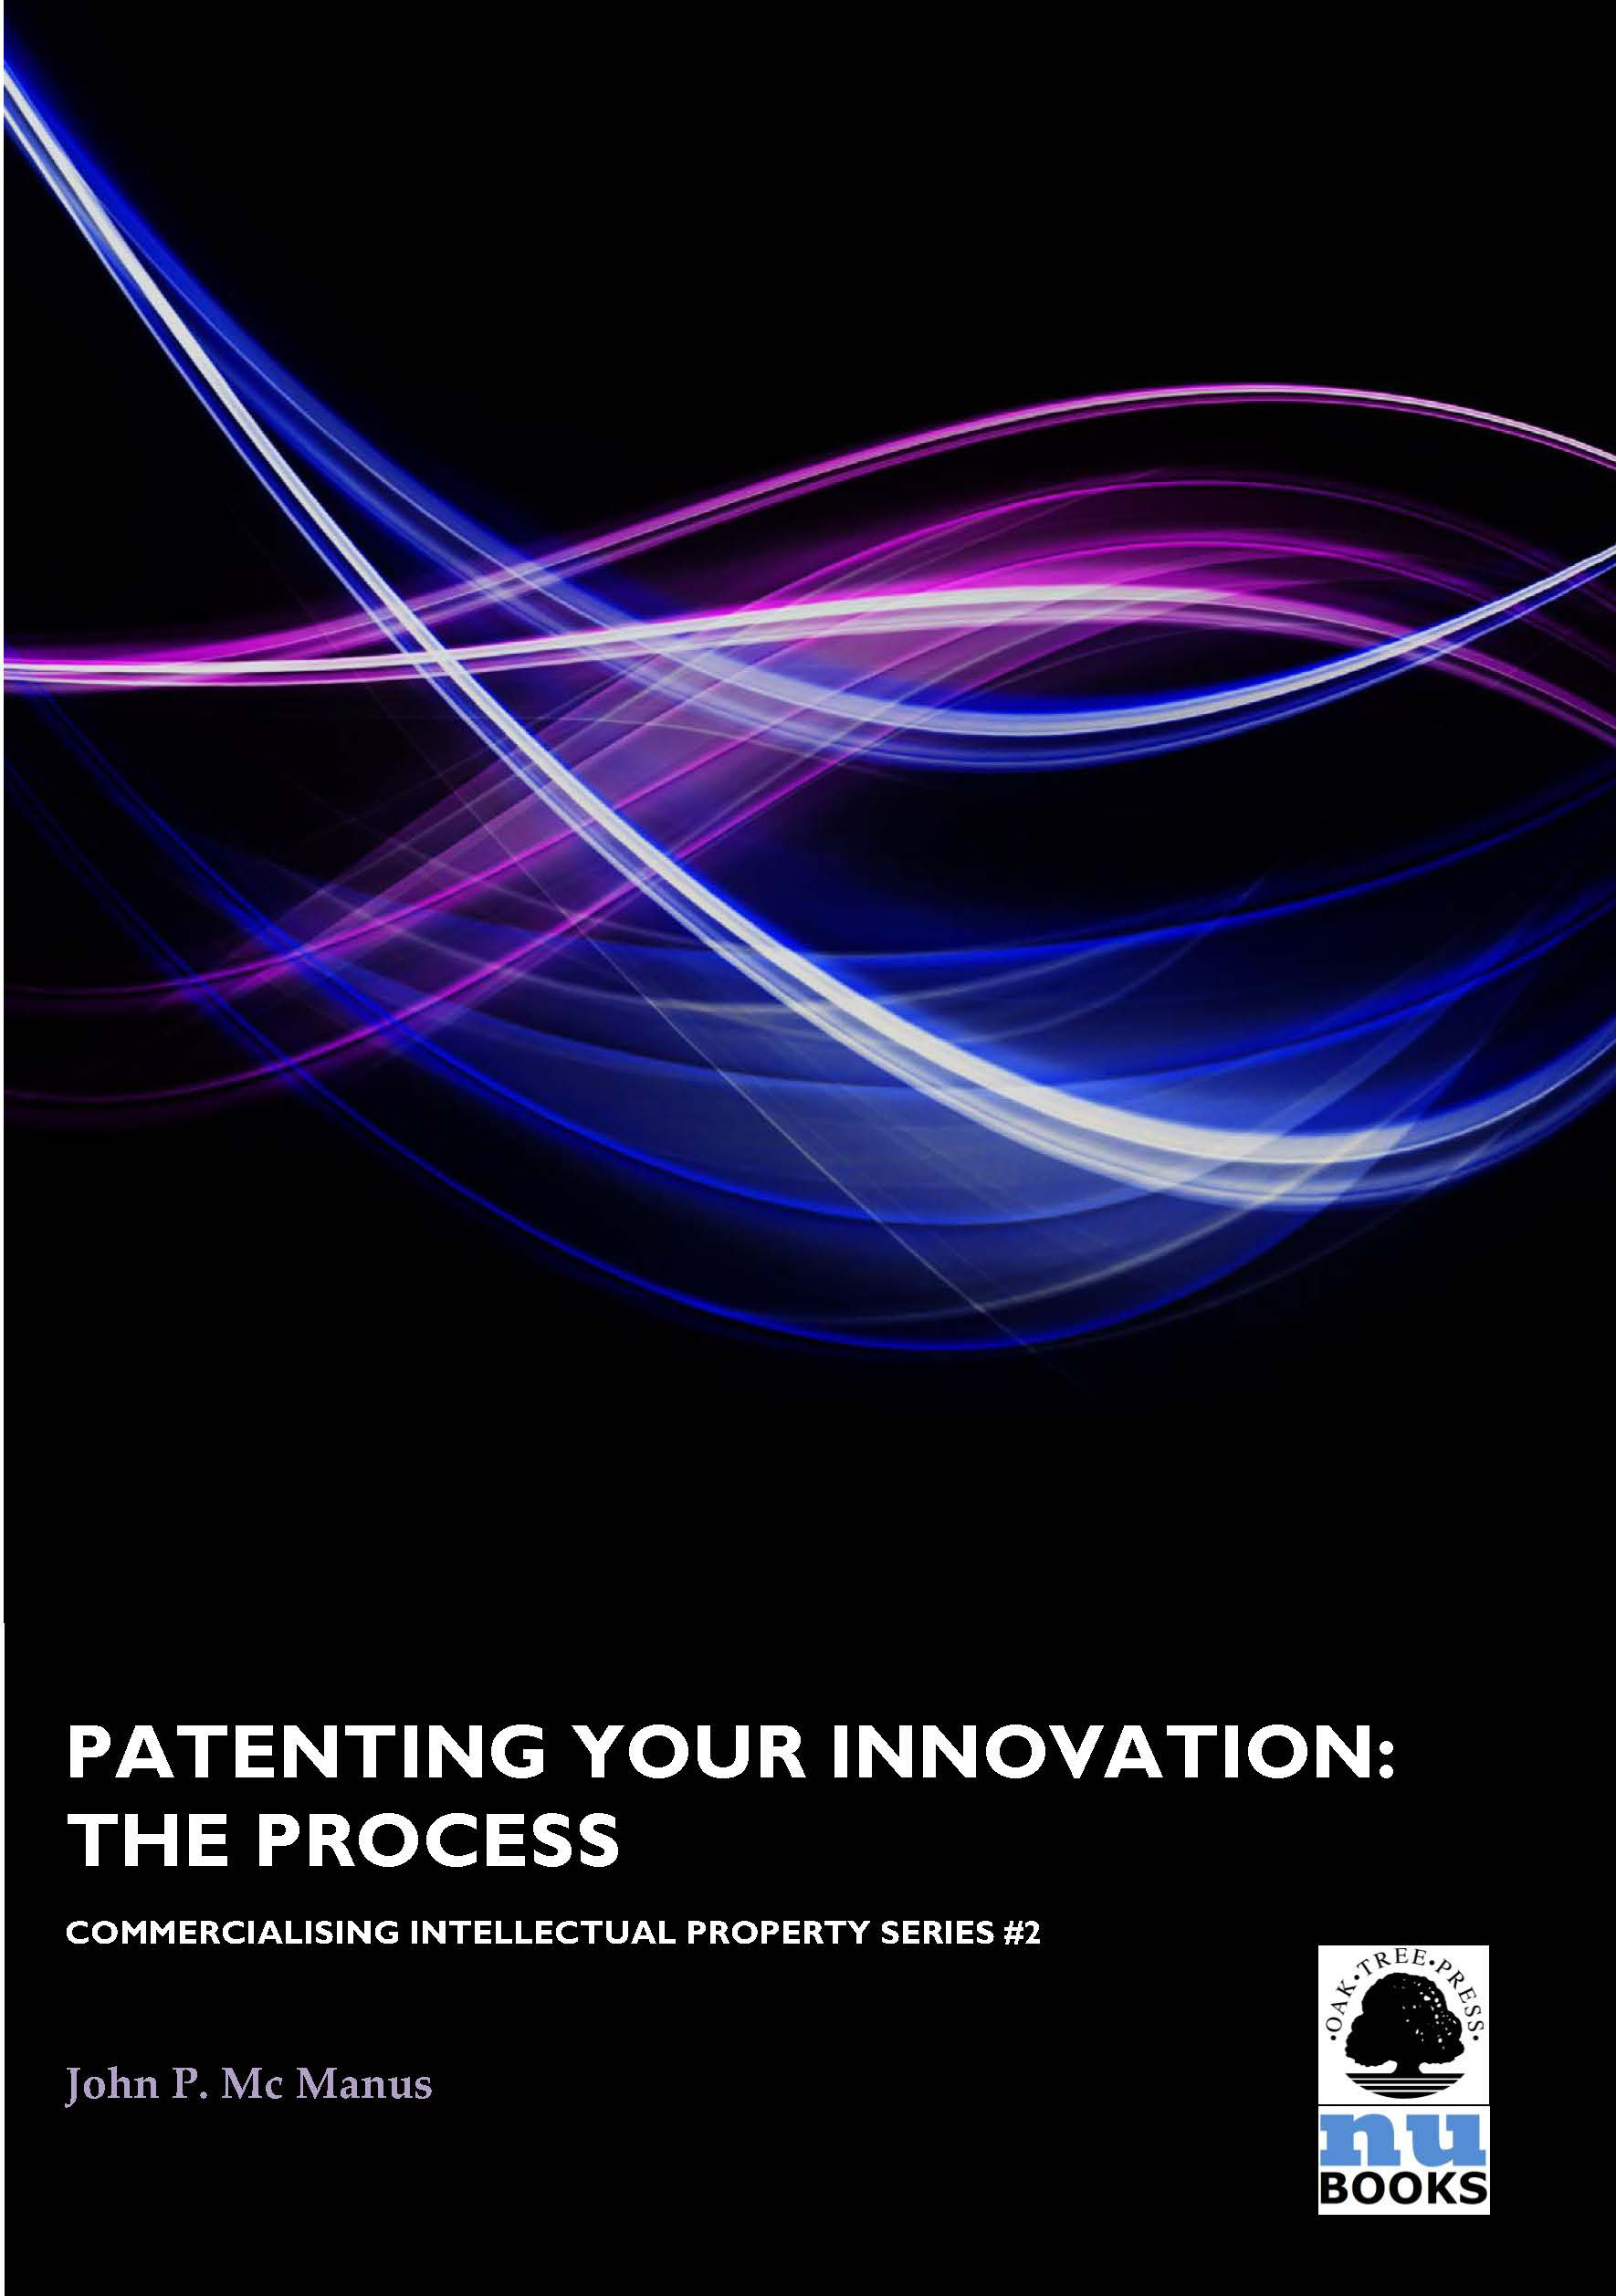 Patenting Your Innovation: The Process